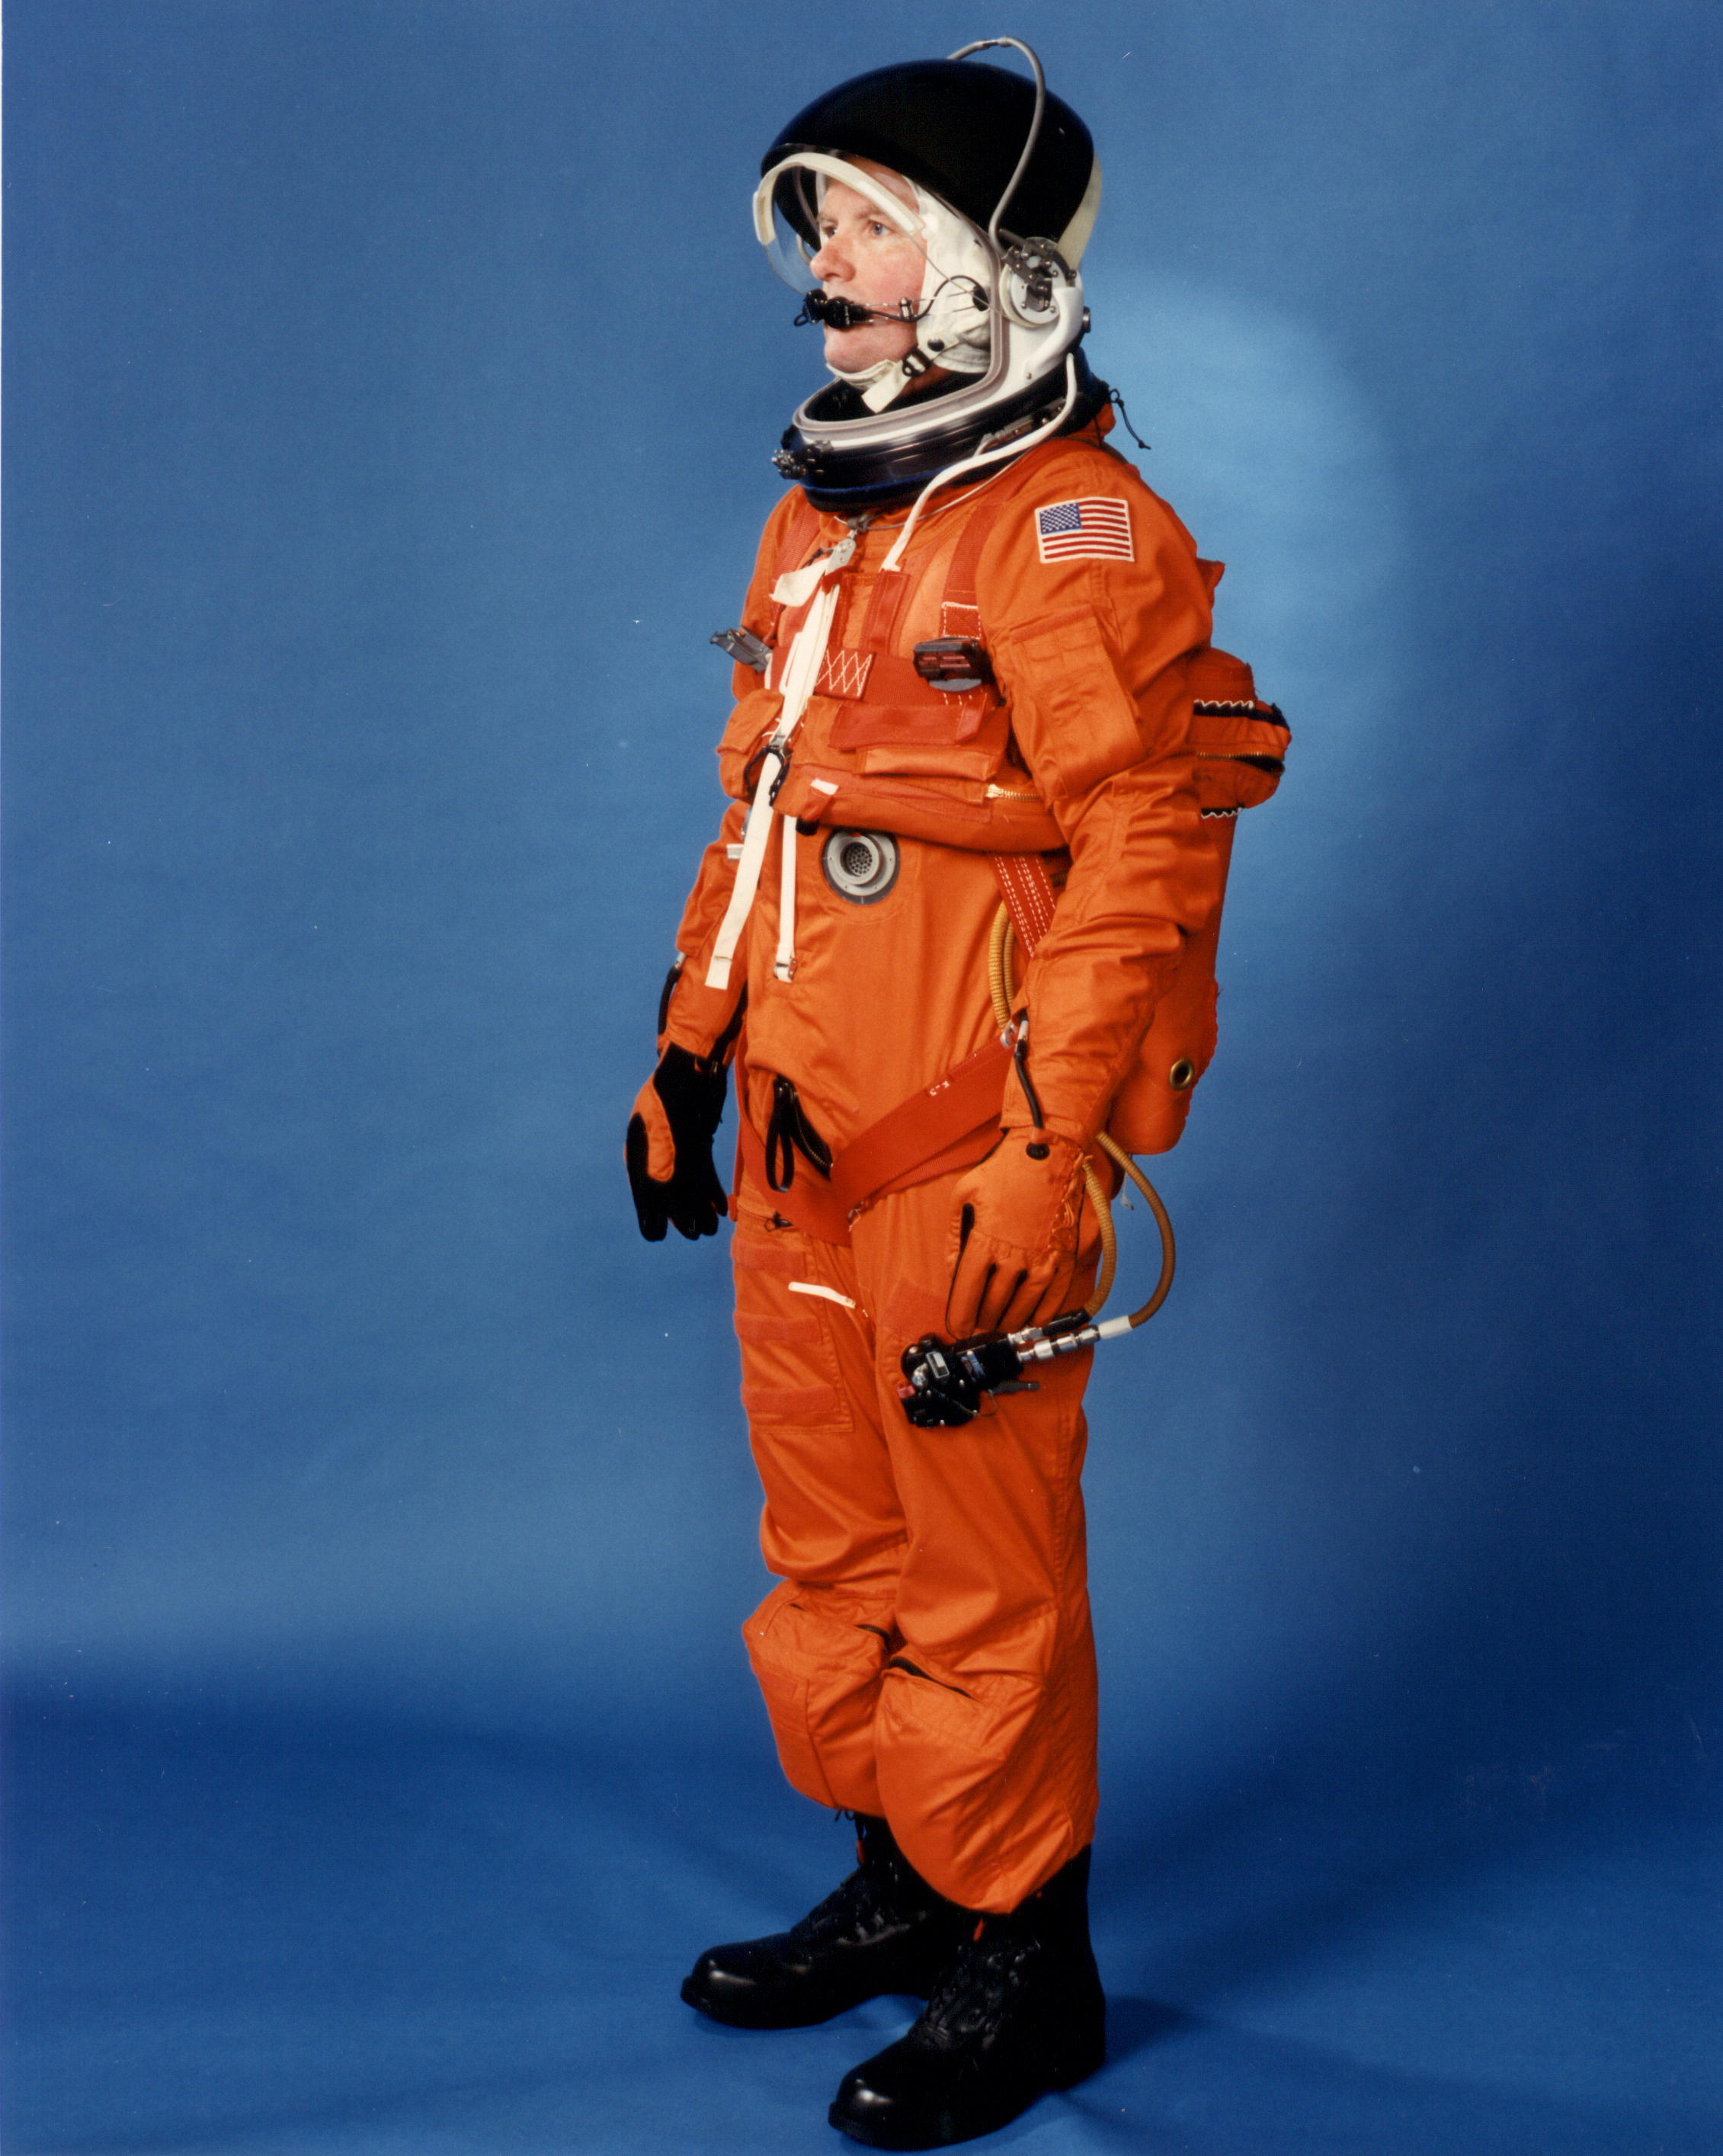 Orange launch and entry gear